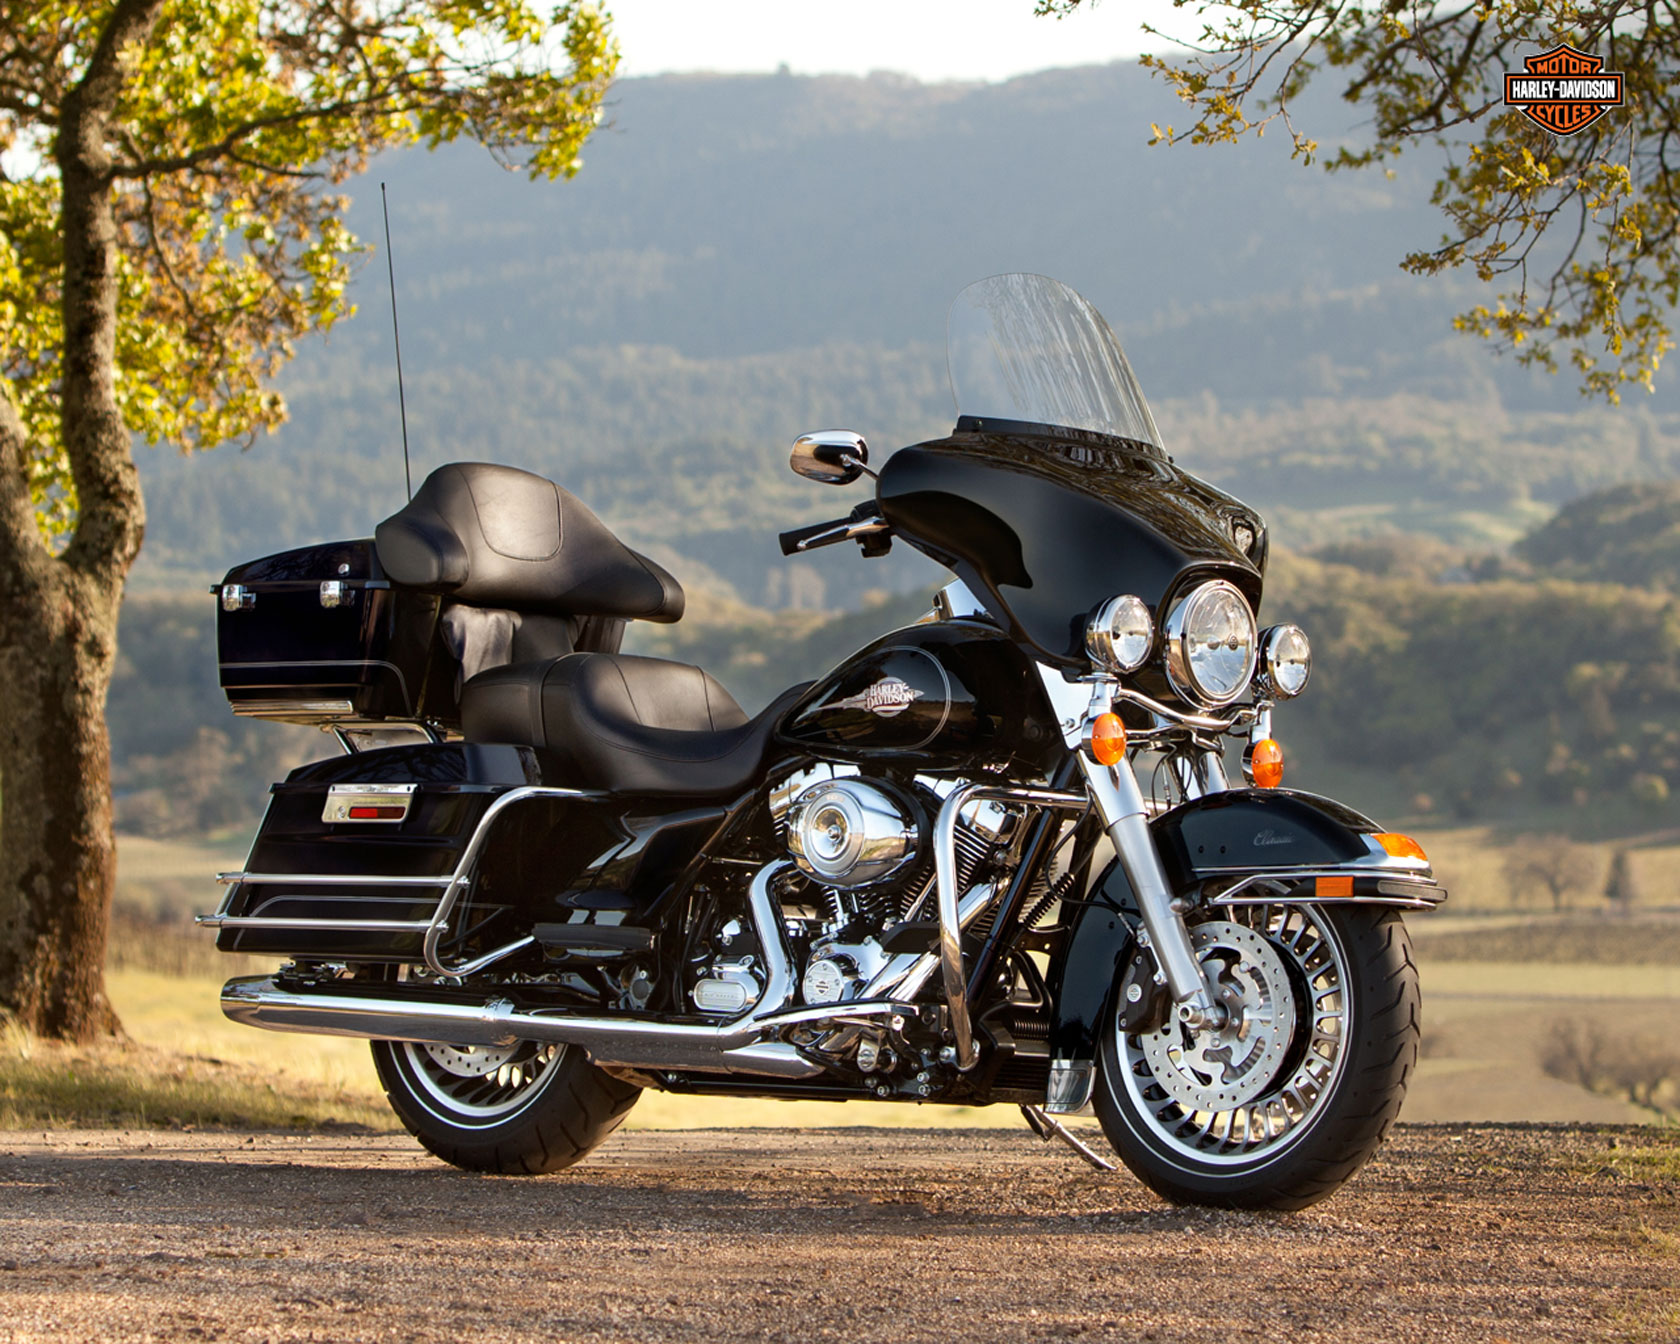 2013 harley davidson flhtc electra glide classic wallpaper